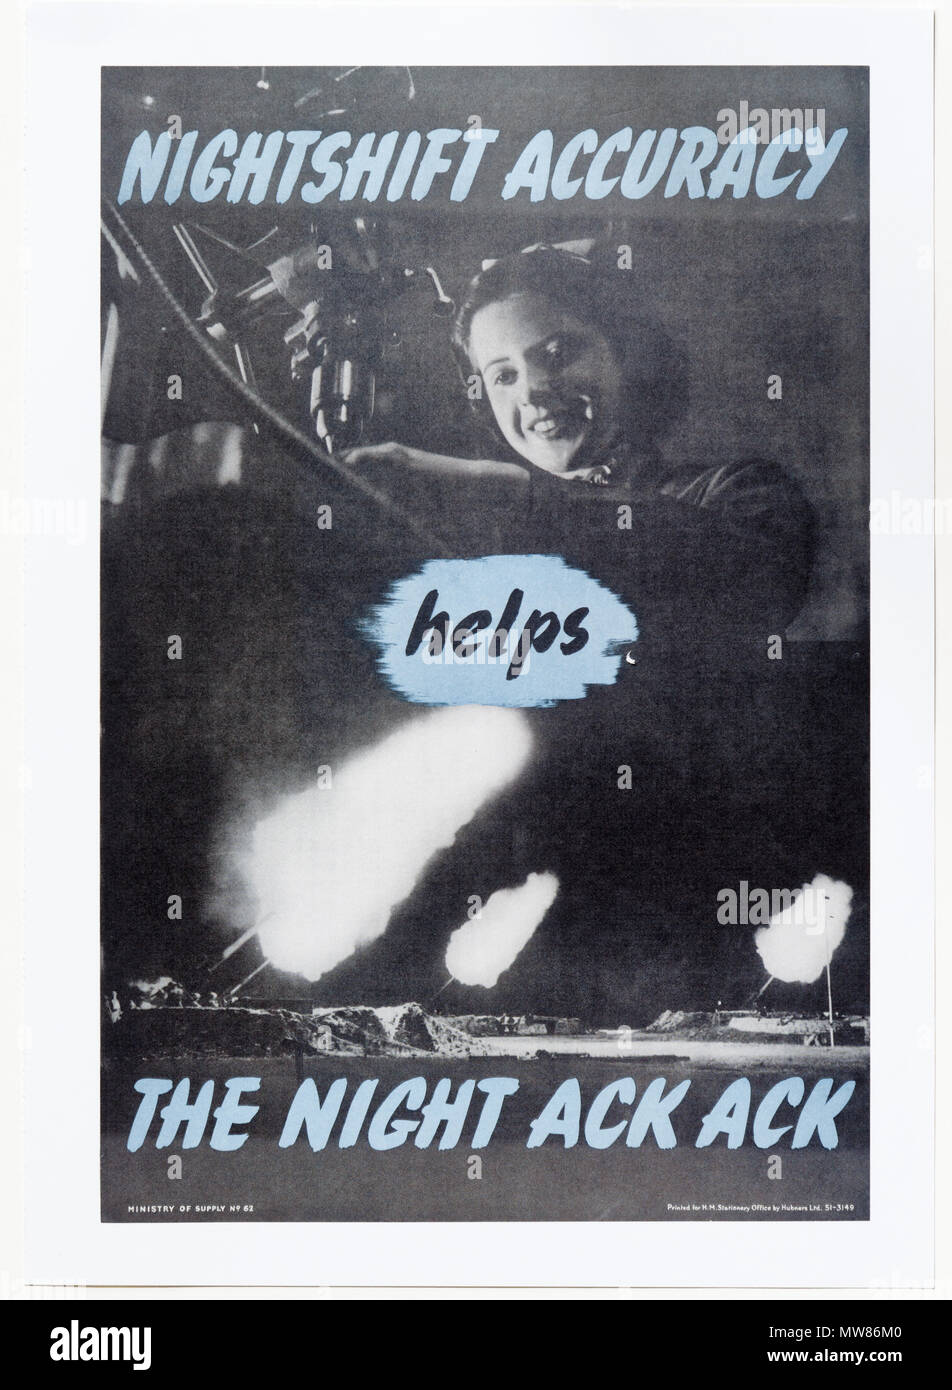 A Second World War poster saying Nightshift Accuracy helps Night Ack Ack, encouraging people to stay alert when working long hours - Stock Image